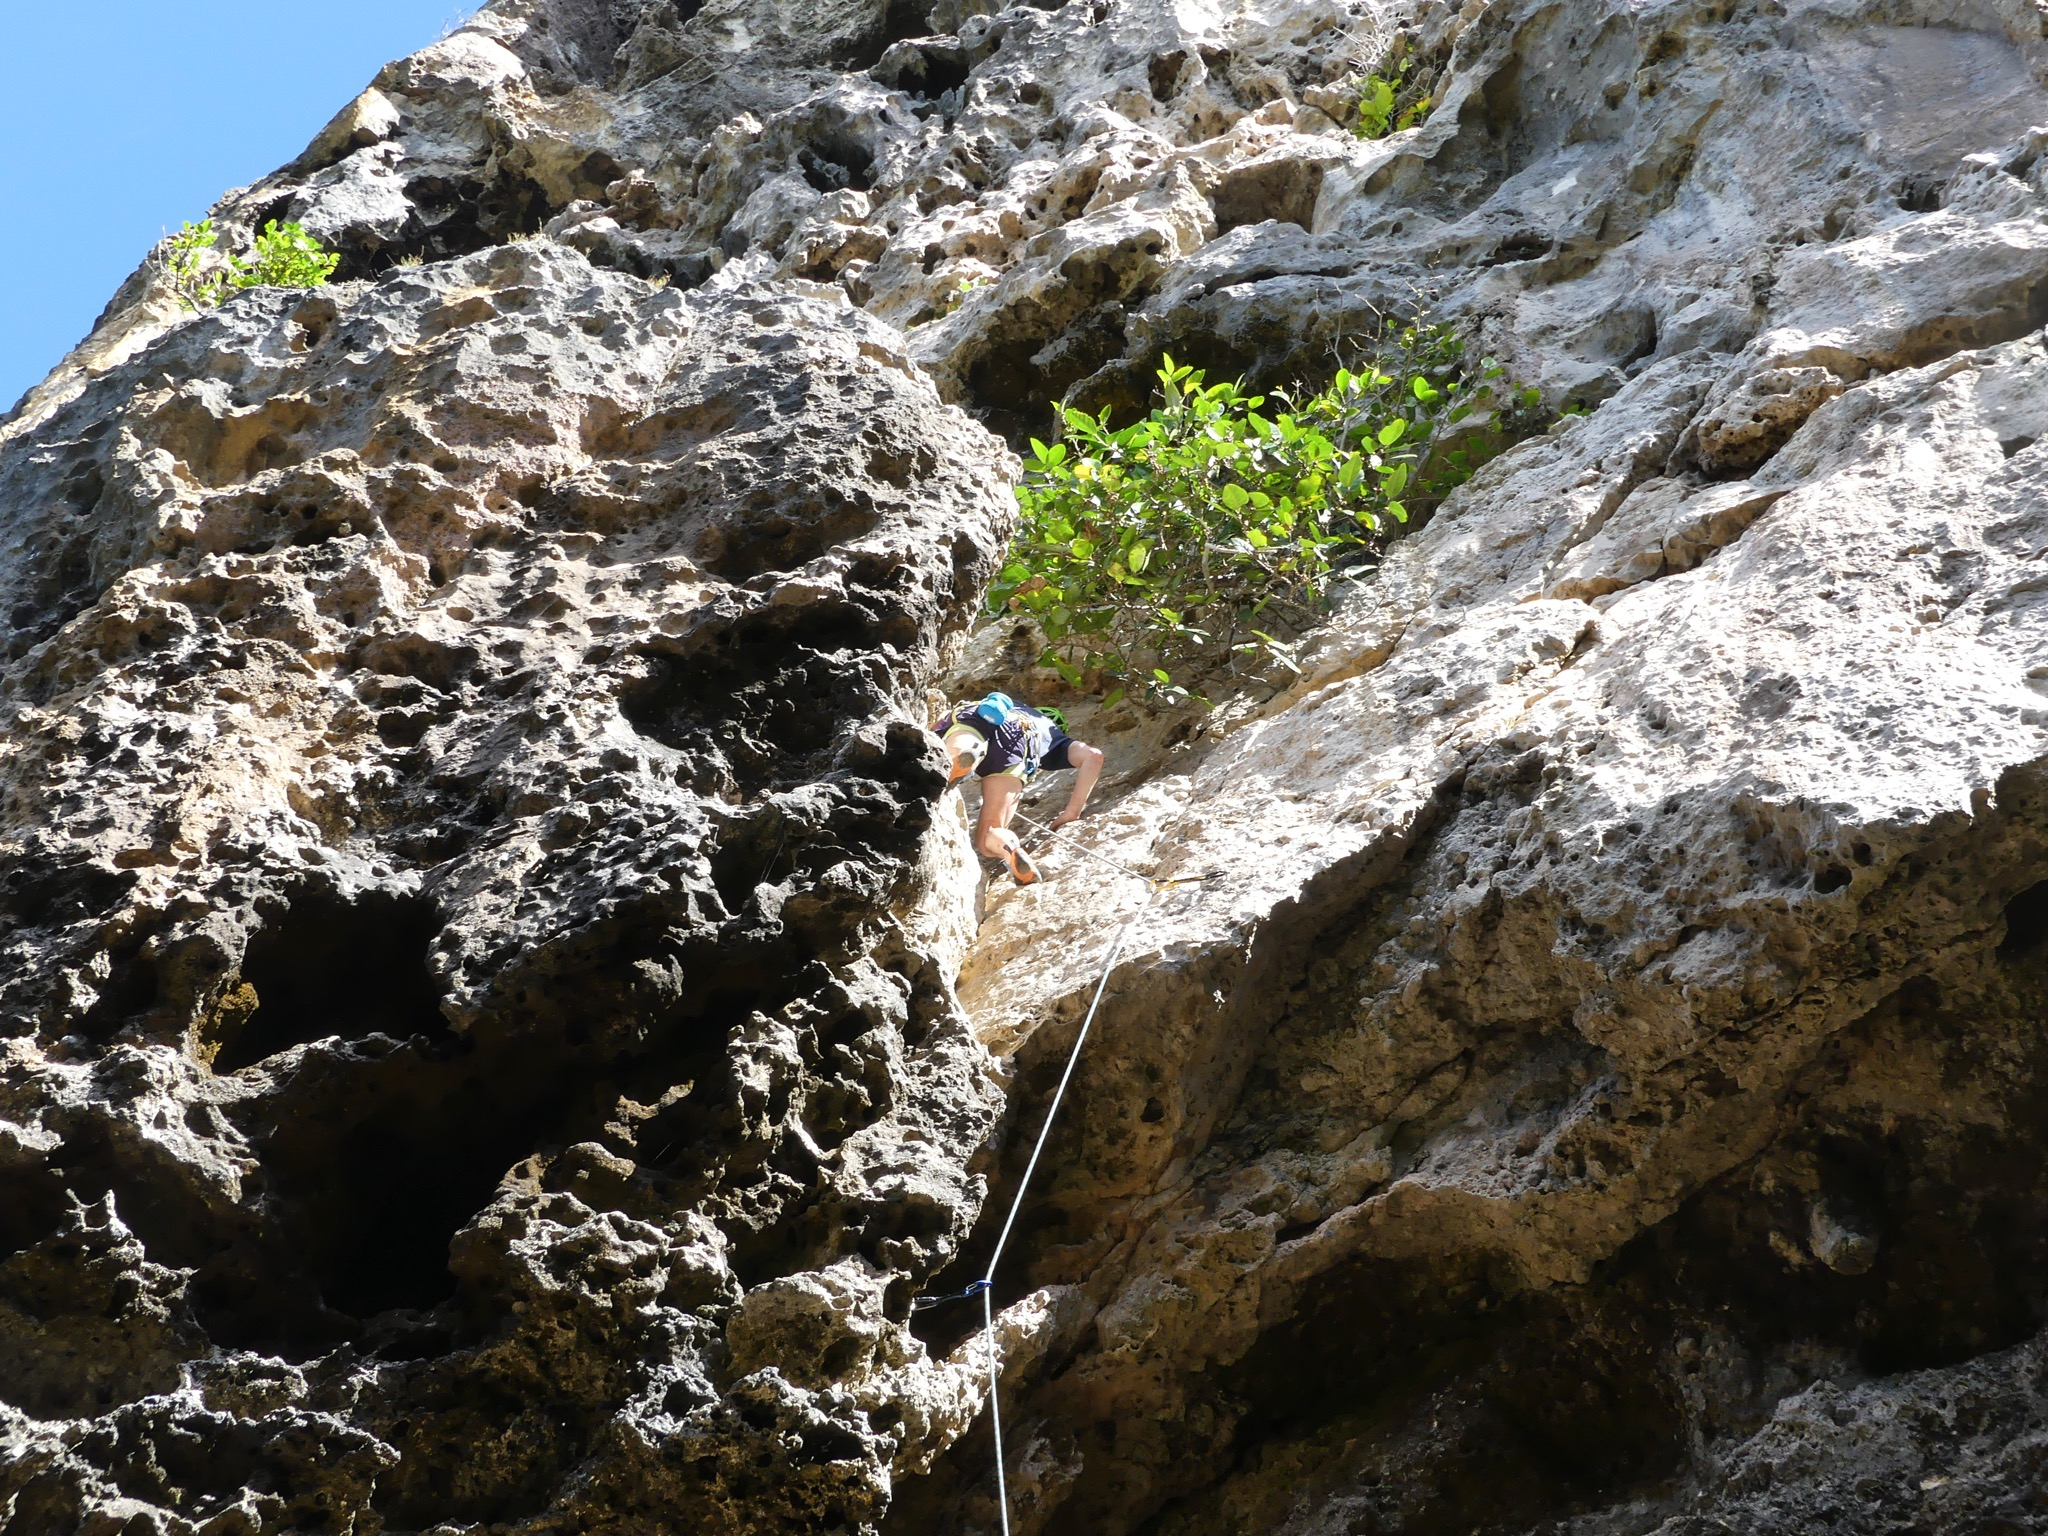 Alexei climbing the easy access pitch (grade 16) on the Whale wall on the first day.